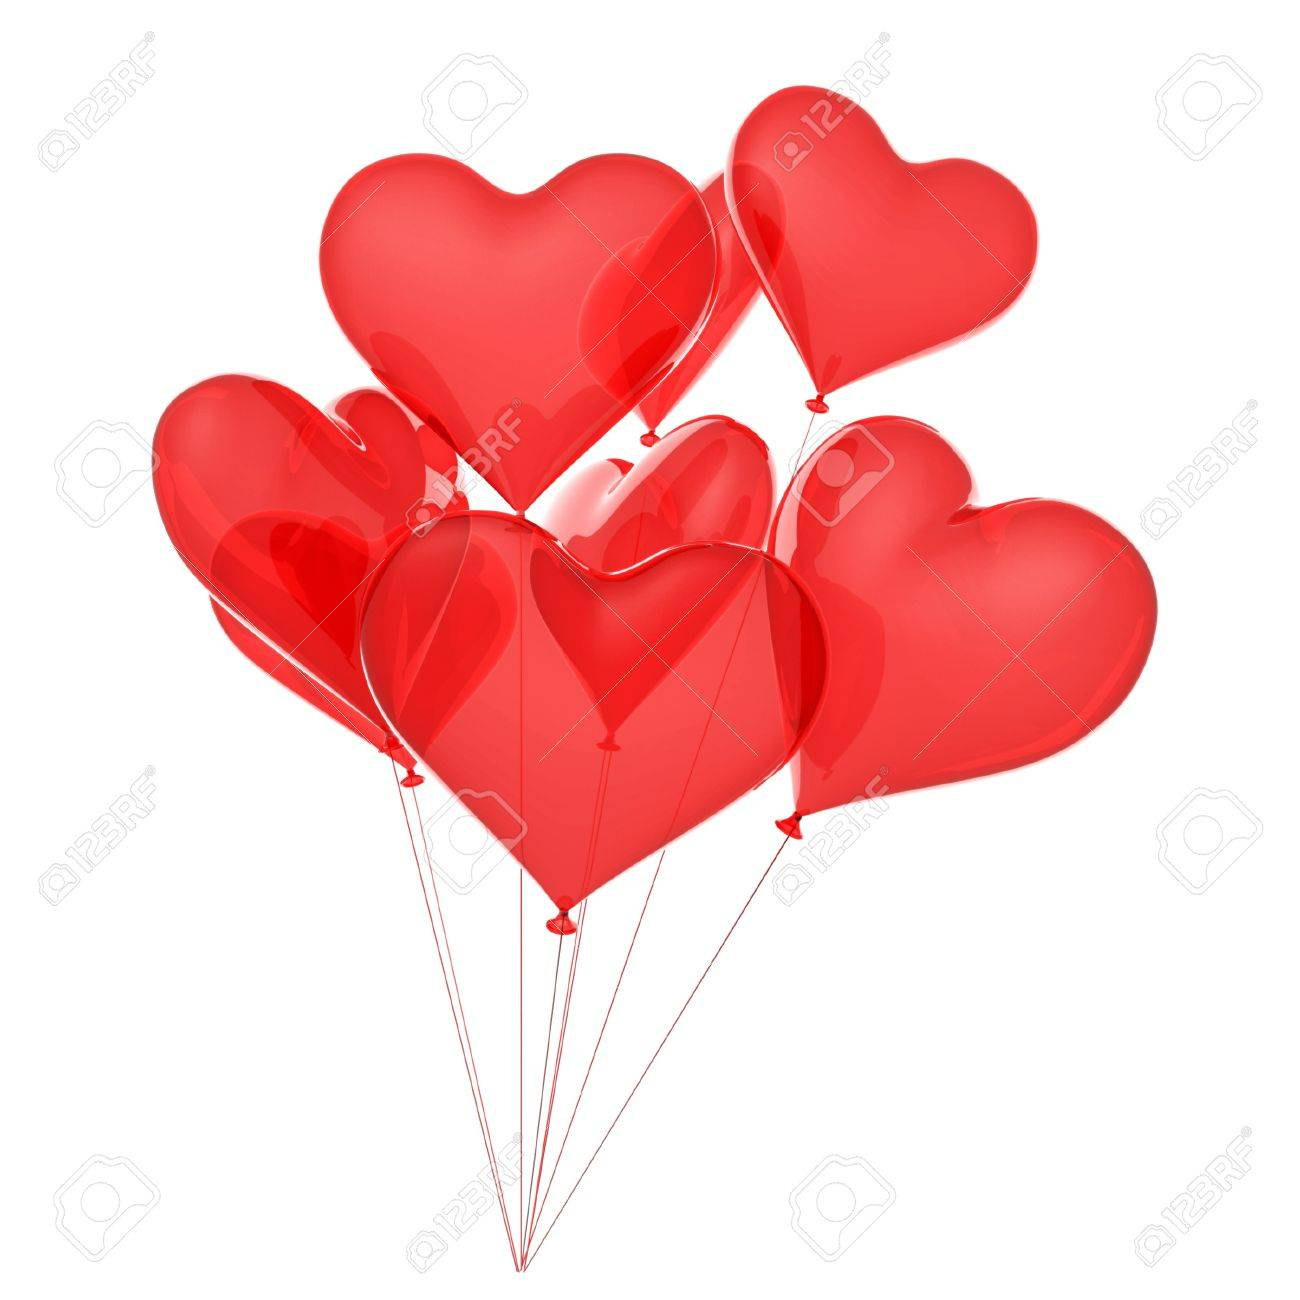 Copula of balloons as red hearts Stock Photo - 9029575